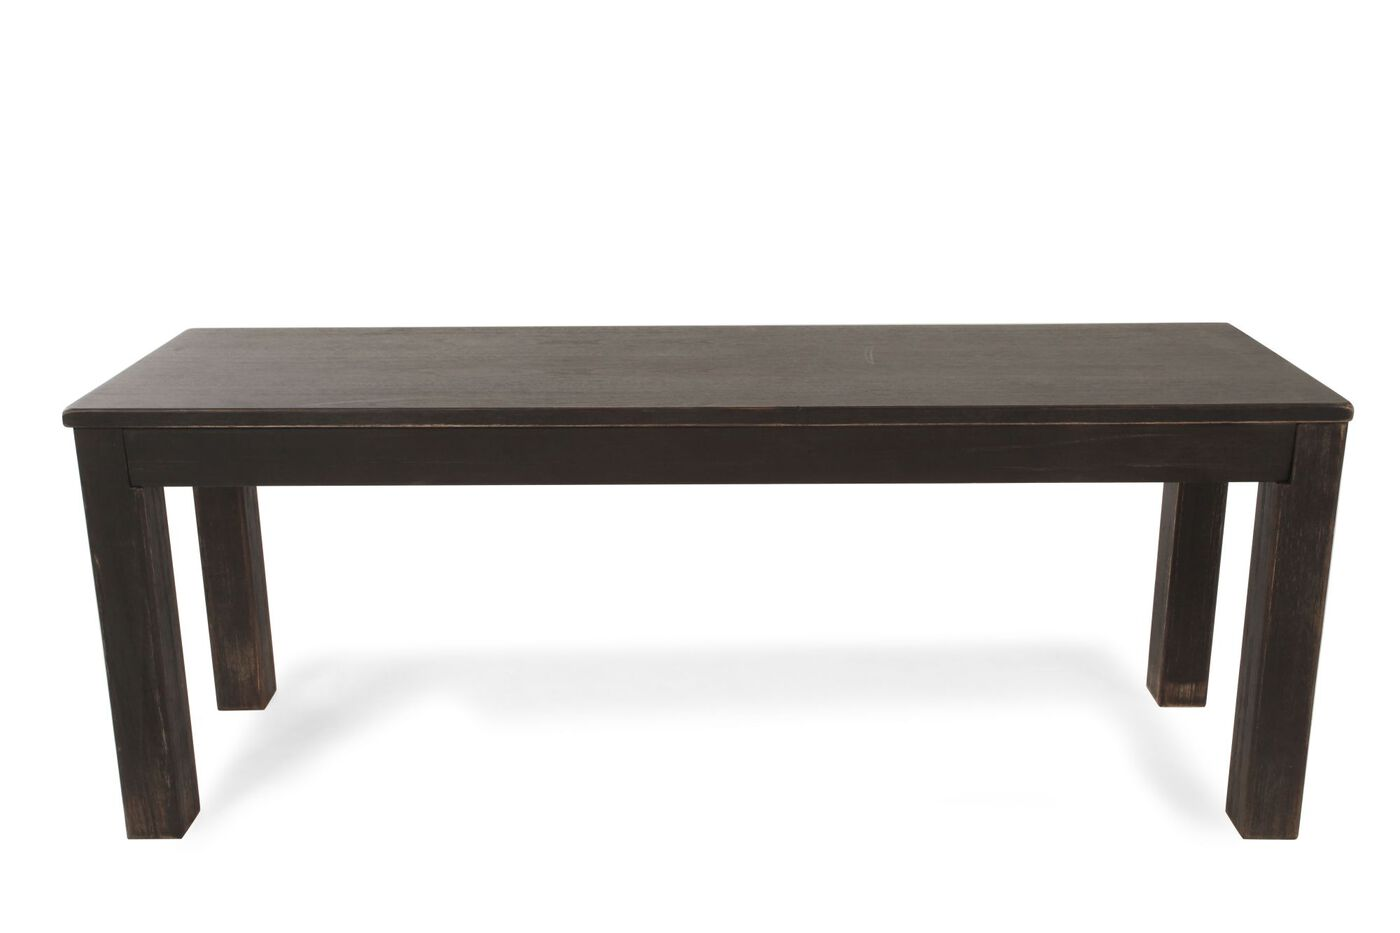 Casual 47 39 39 Dining Bench In Espresso Mathis Brothers Furniture